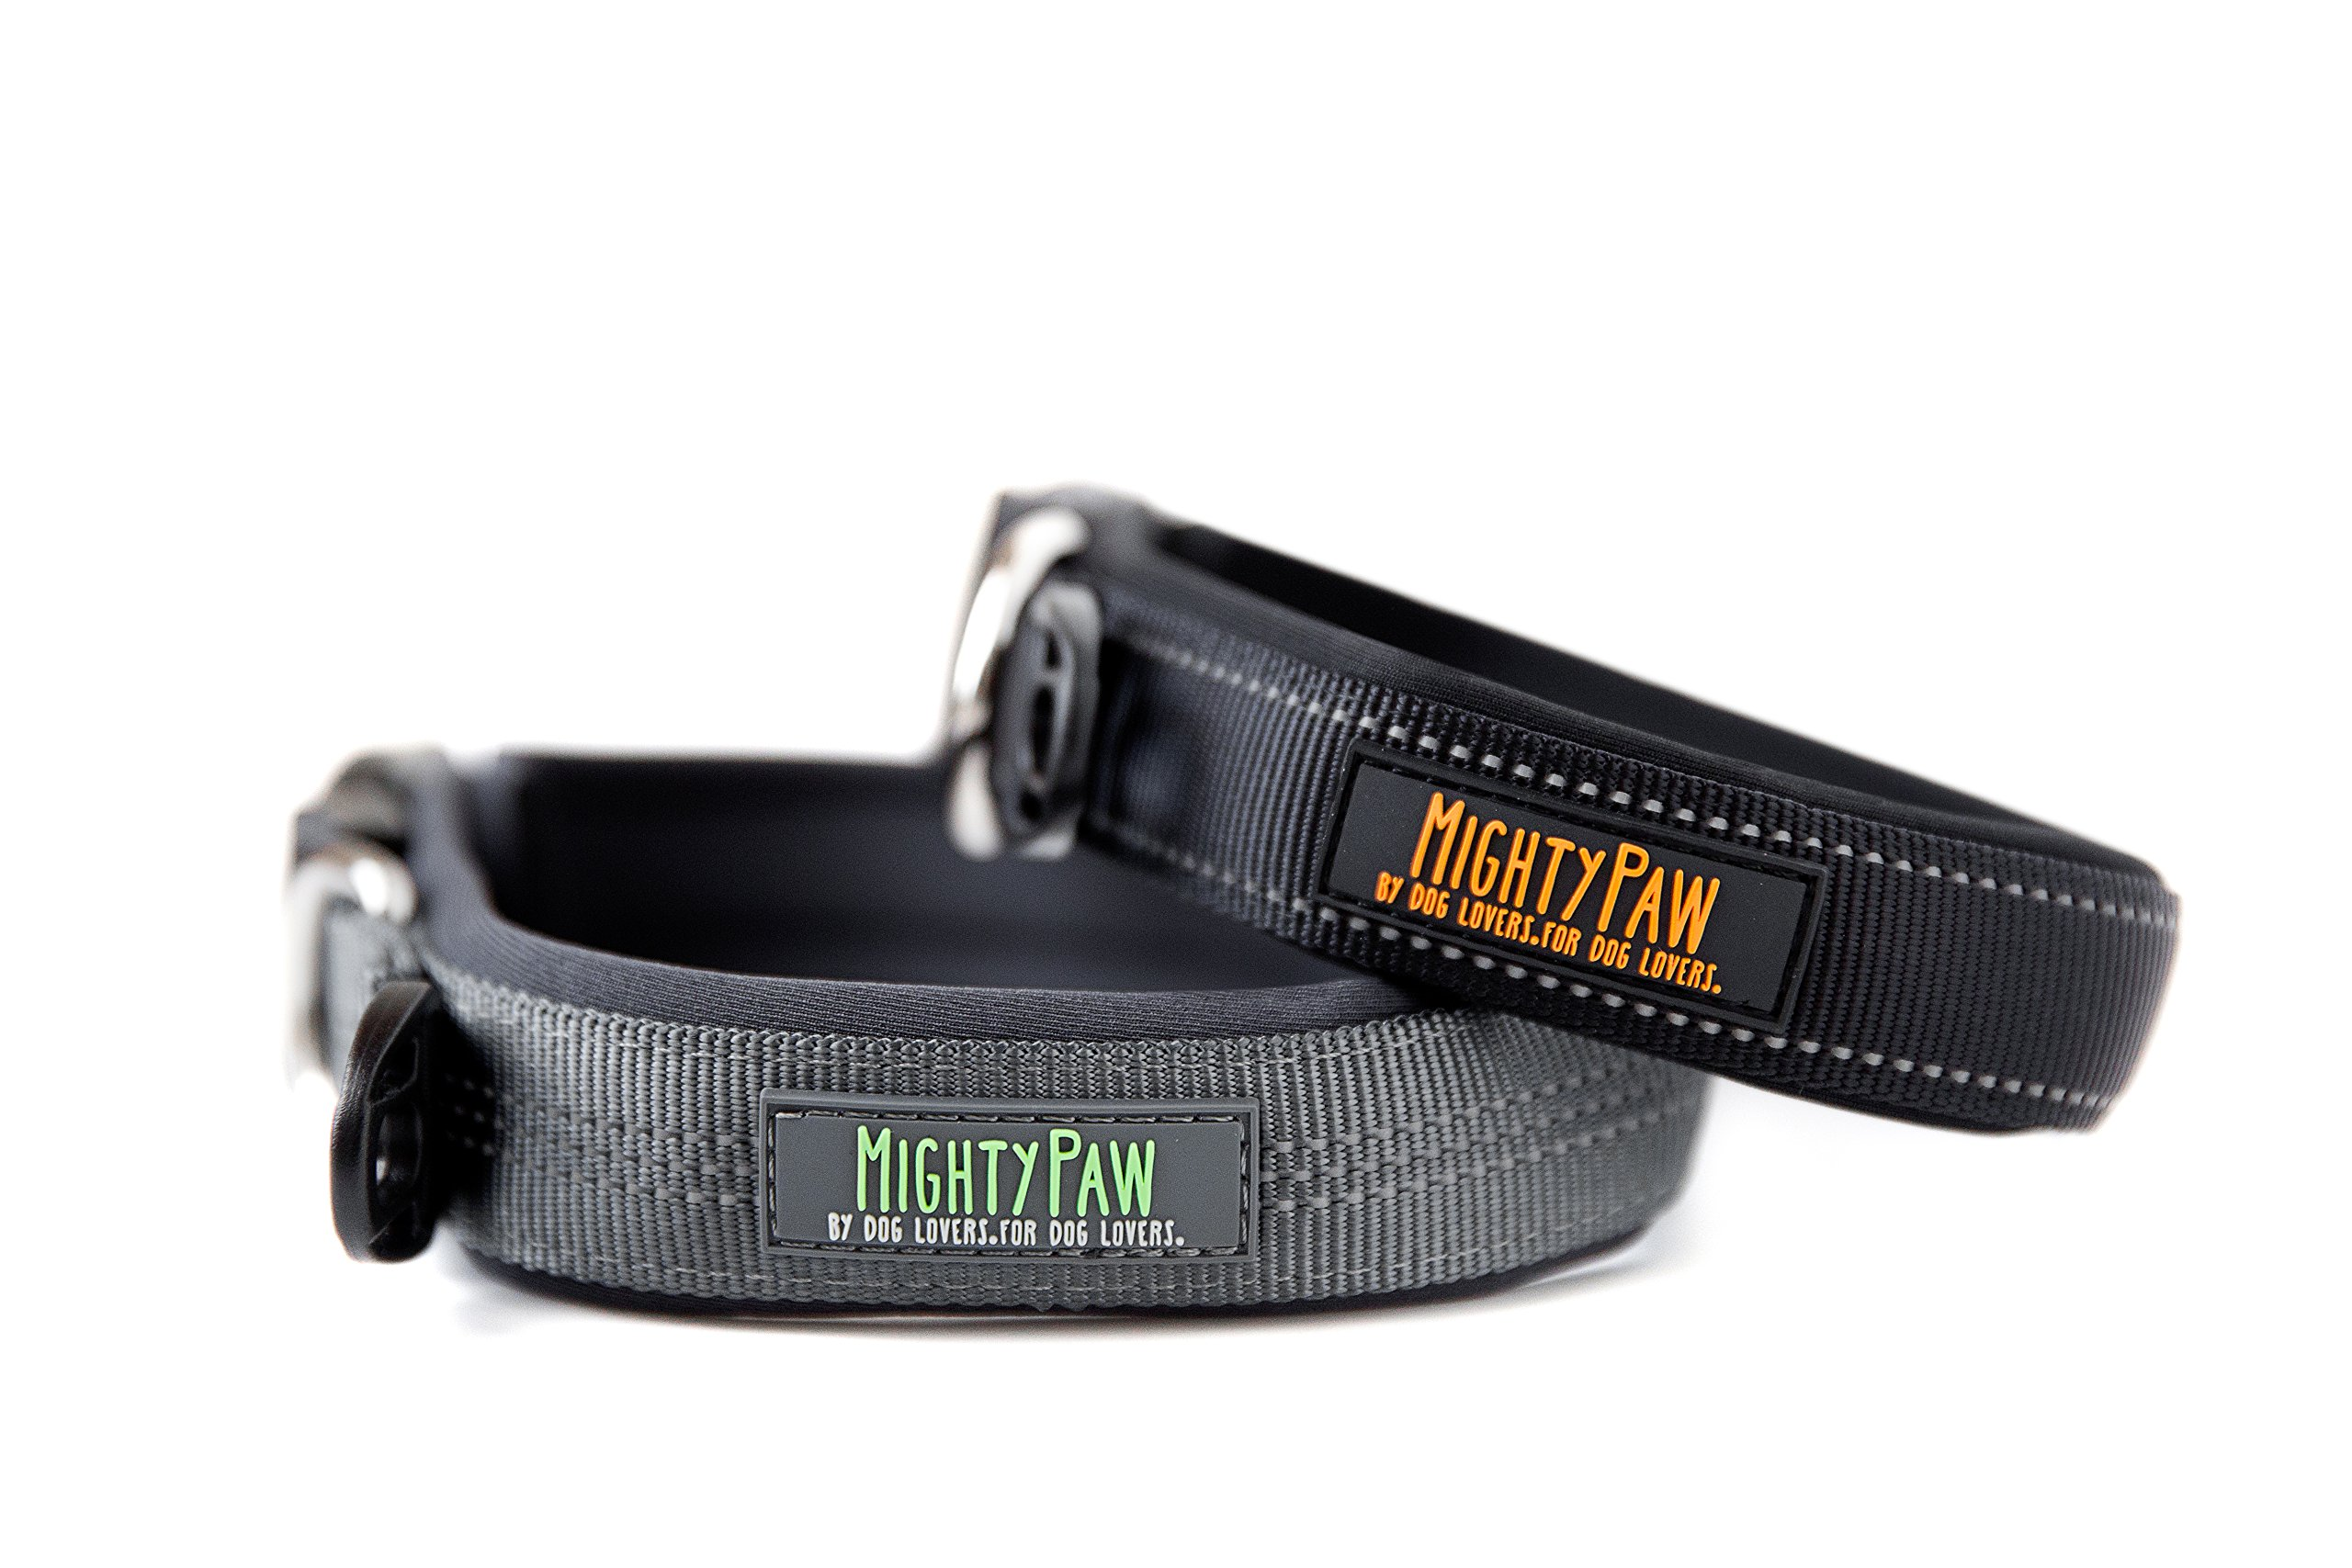 Mighty Paw Neoprene Padded Running Dog Collar, Premium Quality Sports Collar with Reflective Stitching, Extra Comfort for Active Dogs (Grey- Medium 15-18'')